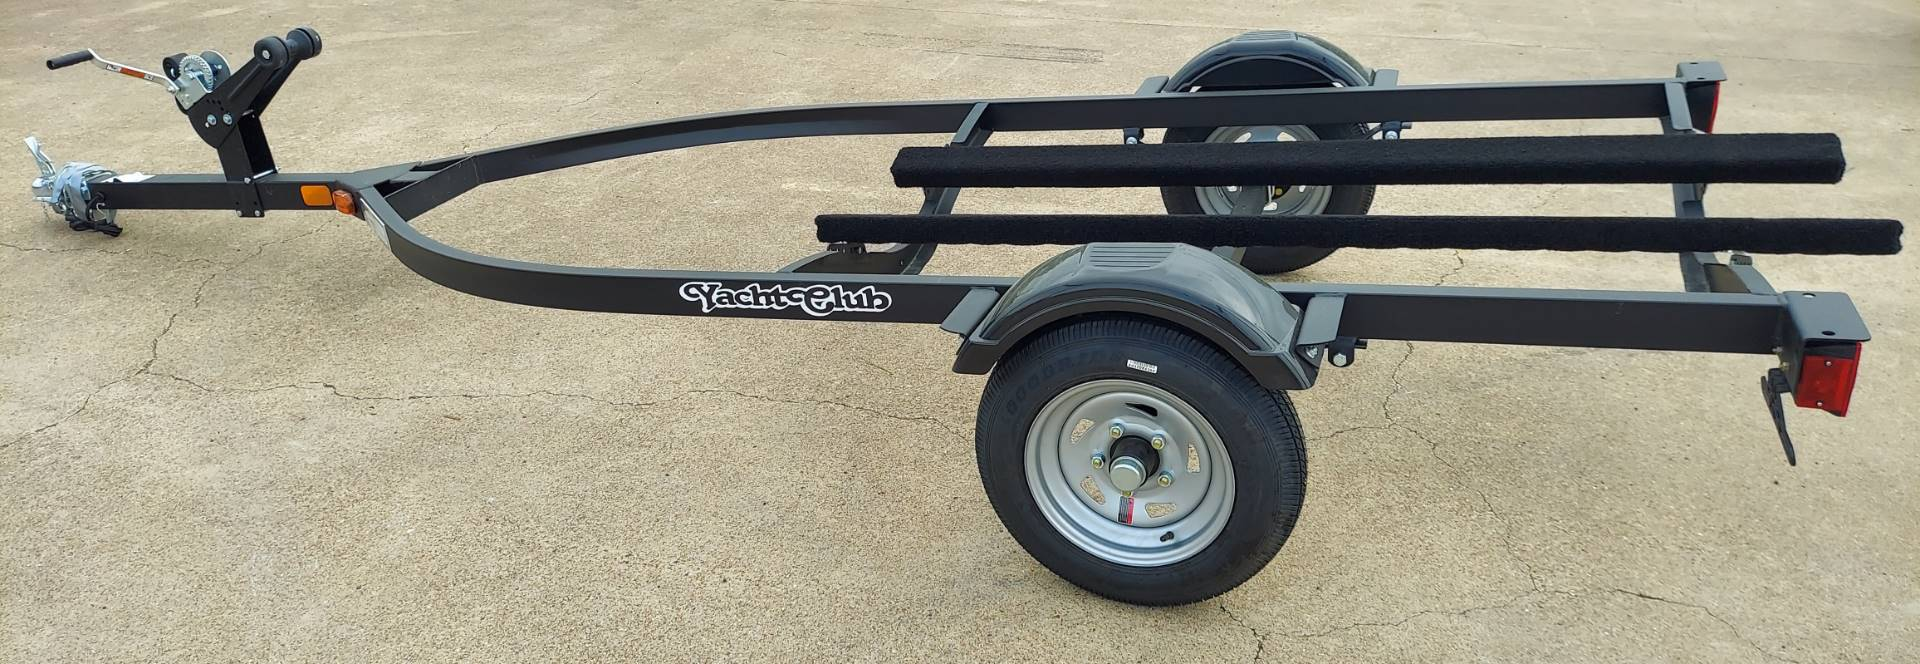 2021 Yacht Club Boat Trailer in Waco, Texas